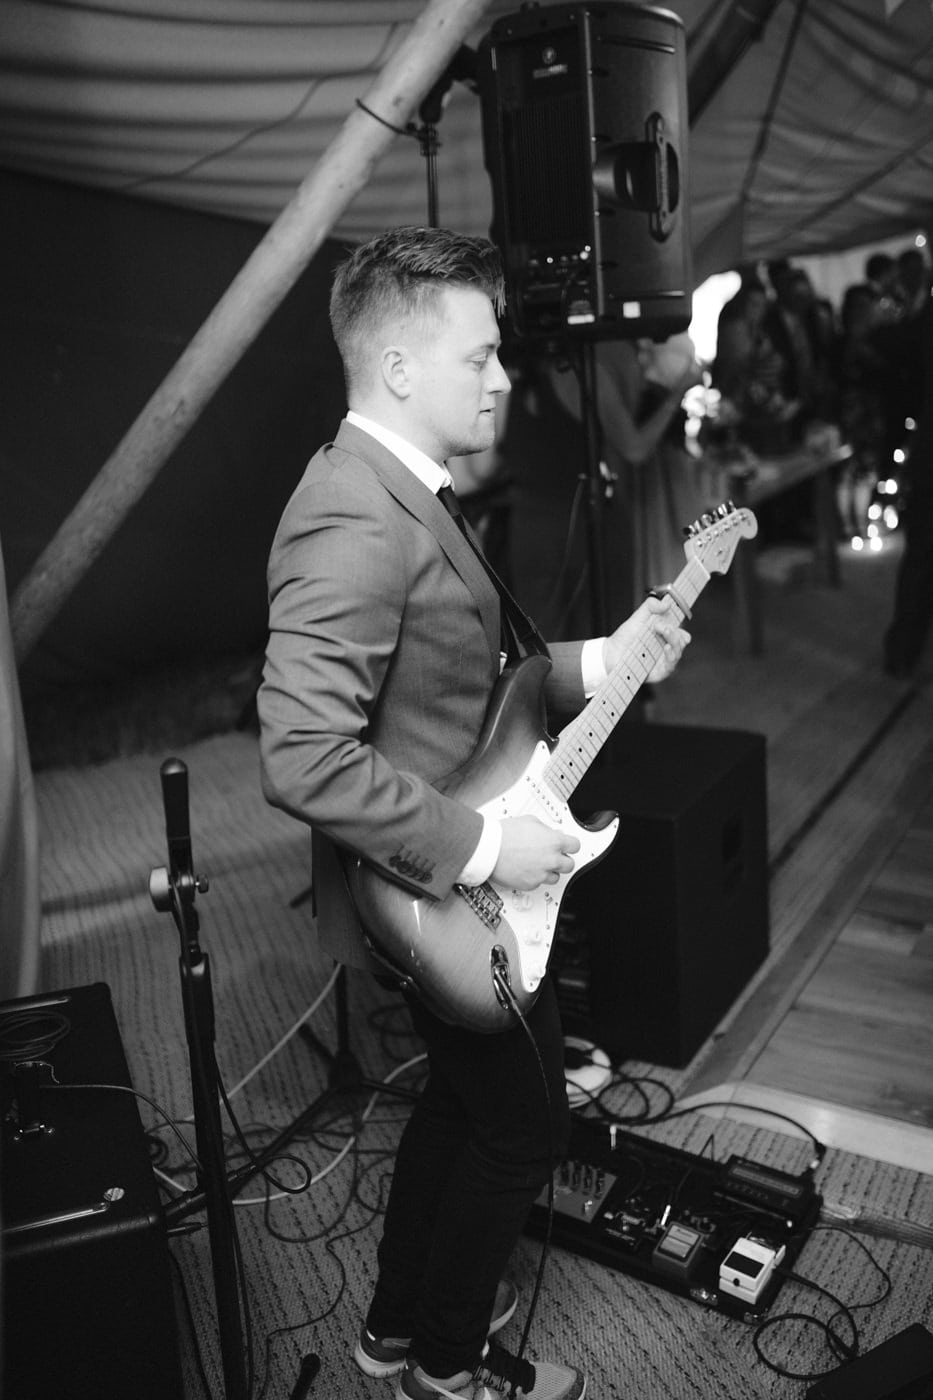 Portrait of Guitarist in Tipi Tent